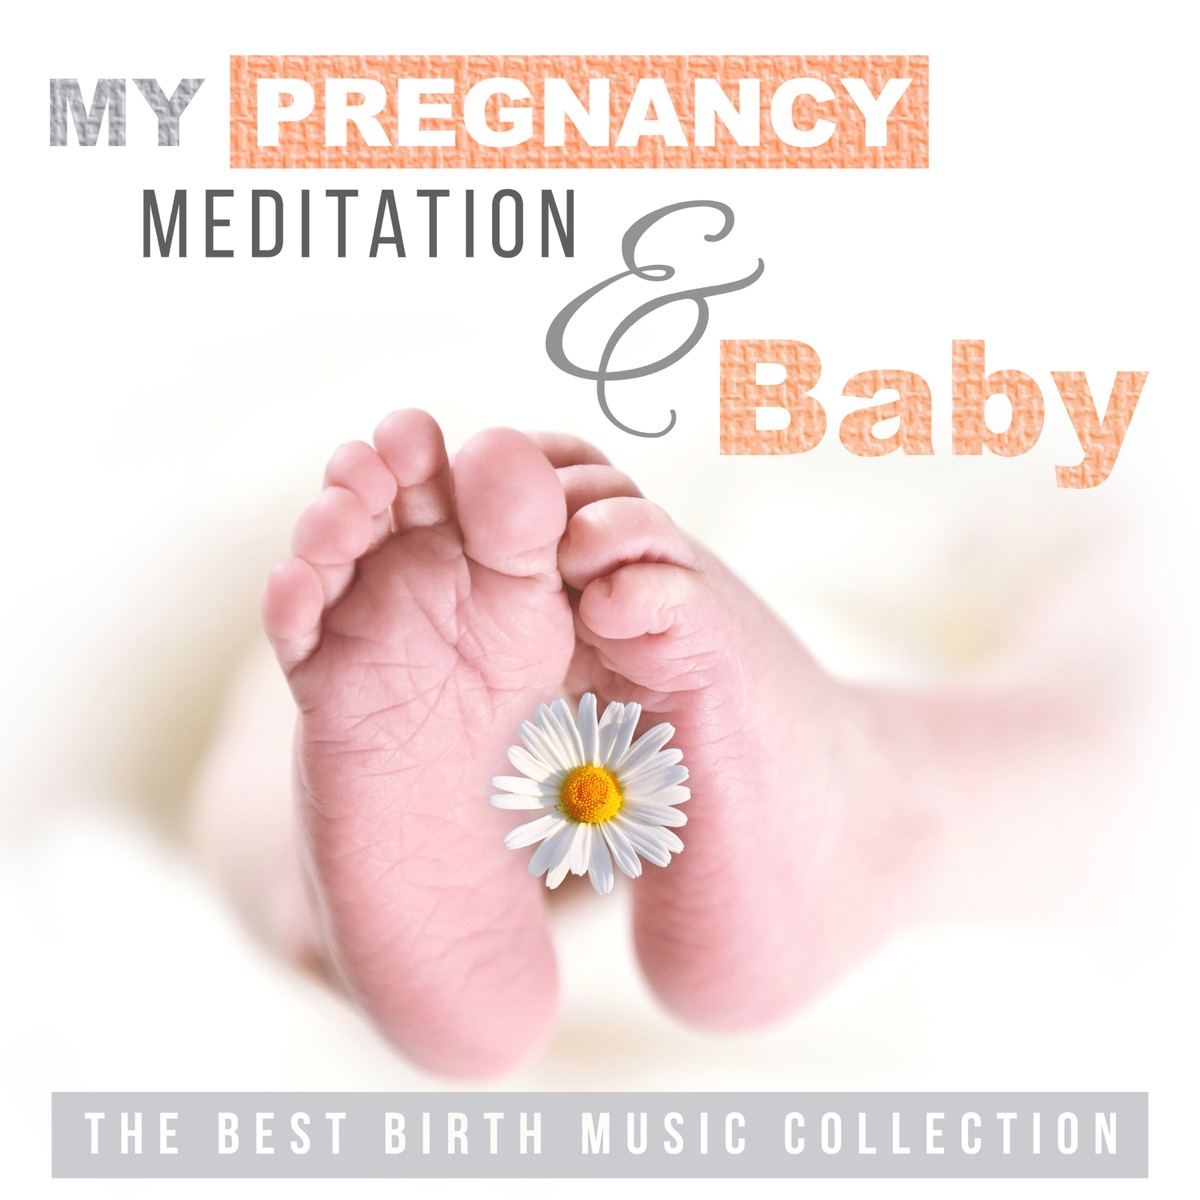 My Pregnancy Meditation & Baby: The Best Birth Music